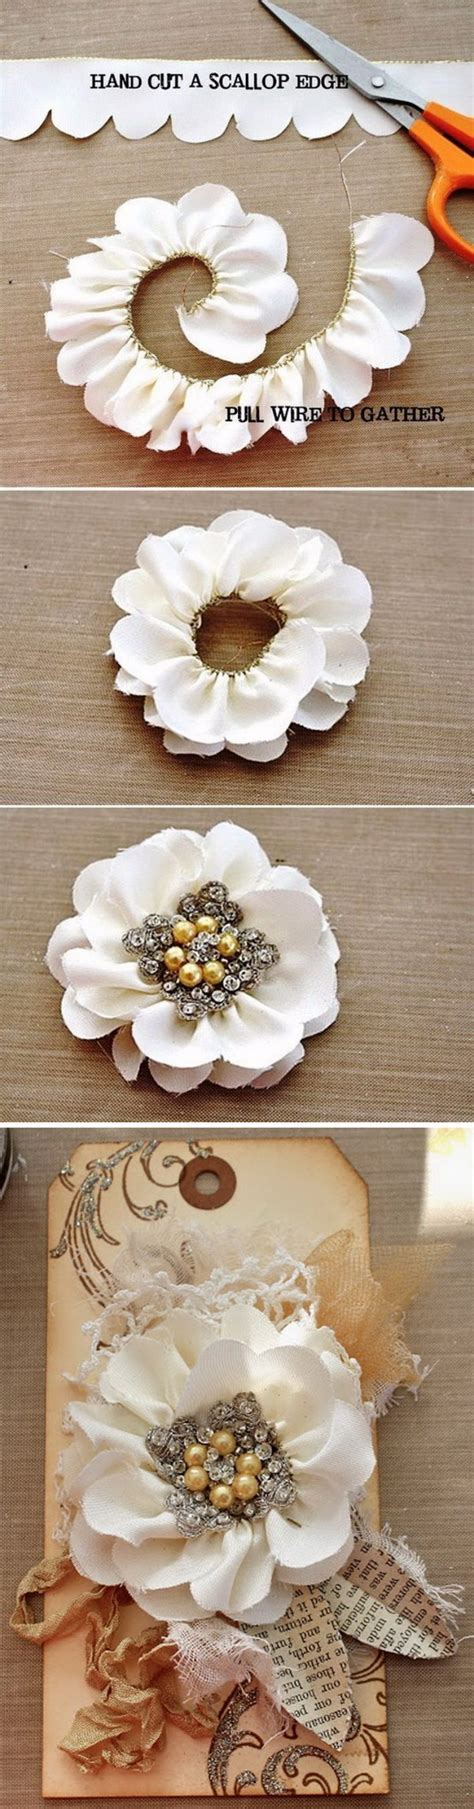 25 diy shabby chic decor 55 awesome shabby chic decor diy ideas projects 2017